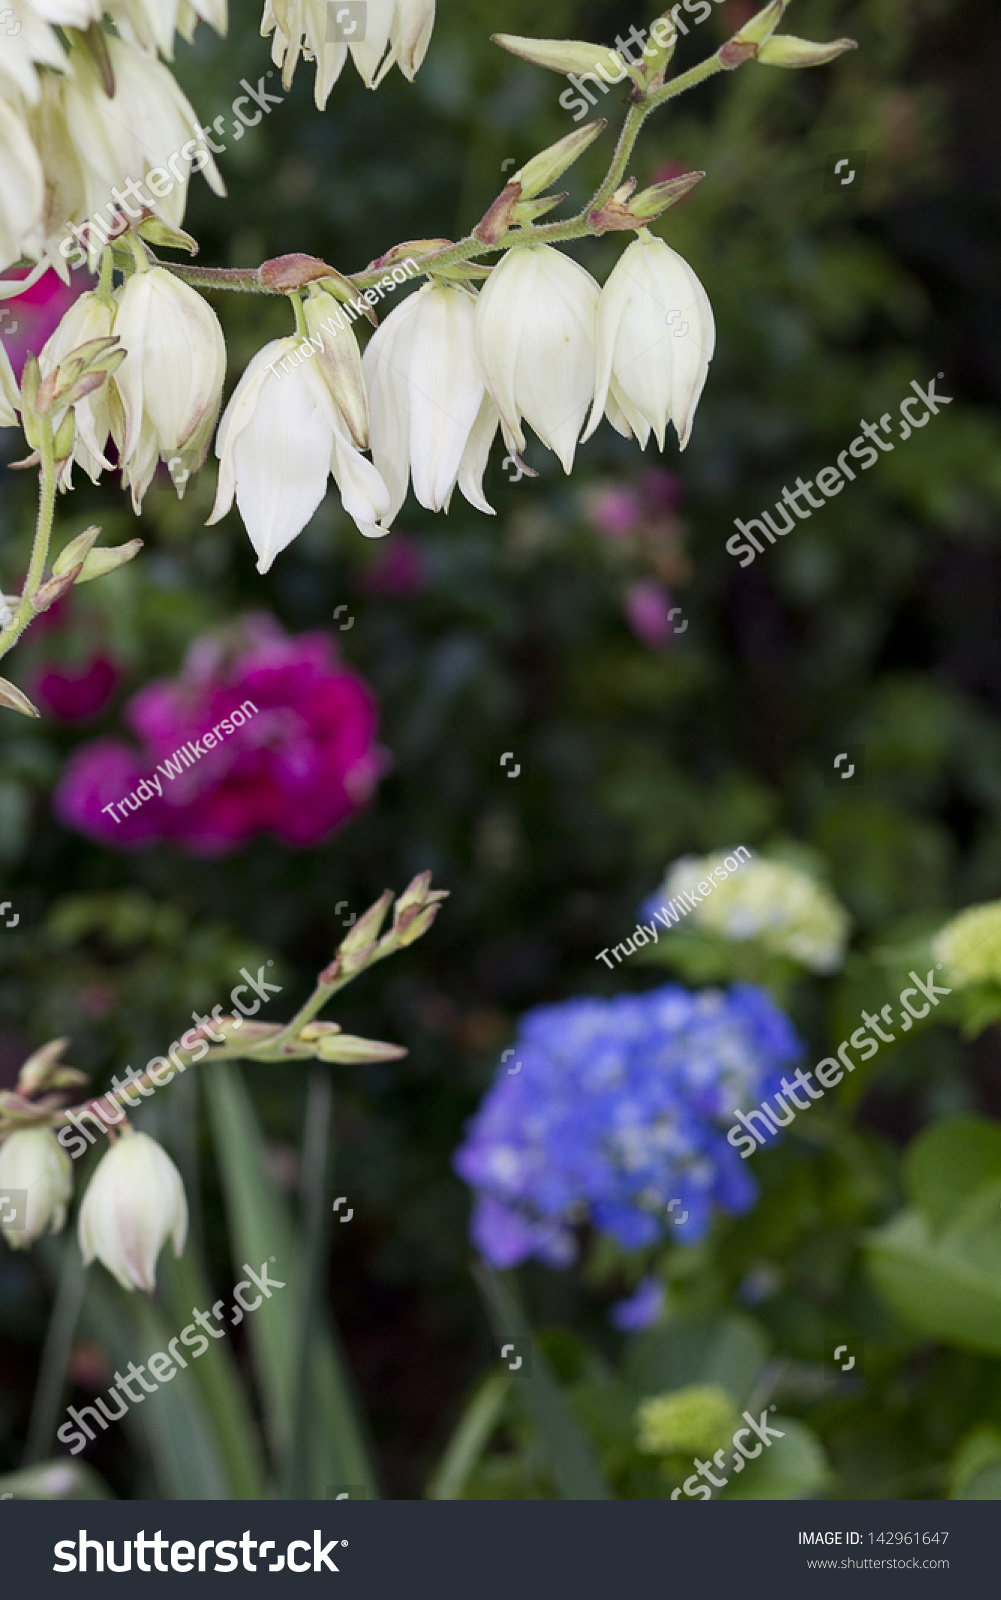 String White Flowers Yucca Plant Garden Stock Photo Edit Now